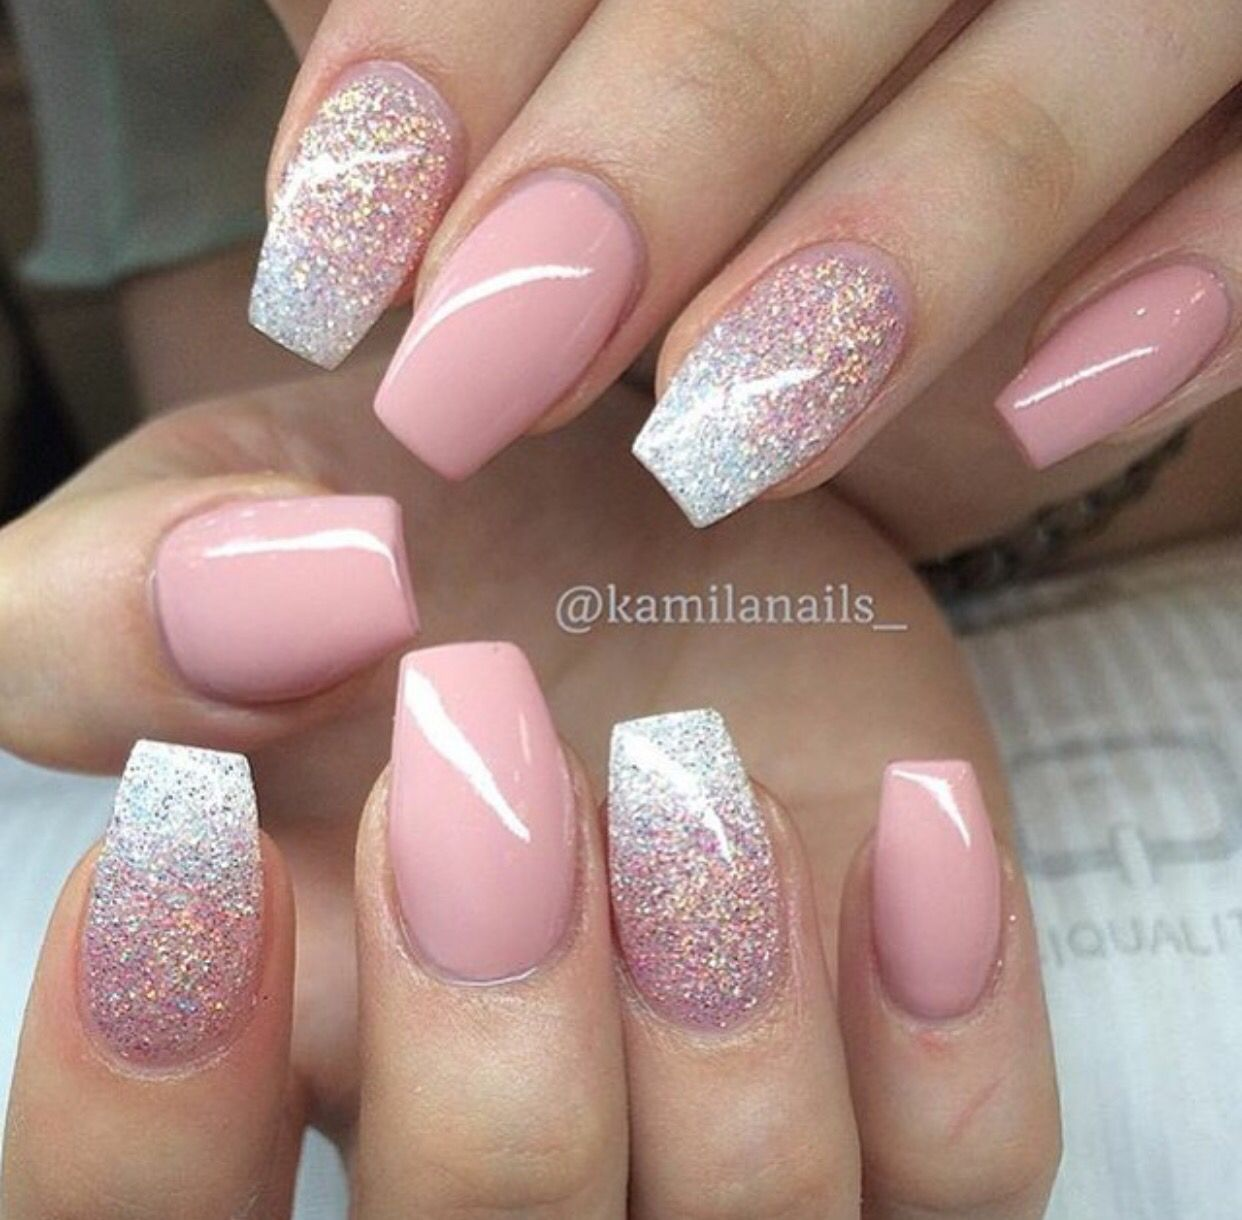 Pink Nails | Nails | Pinterest | Pink nails, Make up and Dipped nails